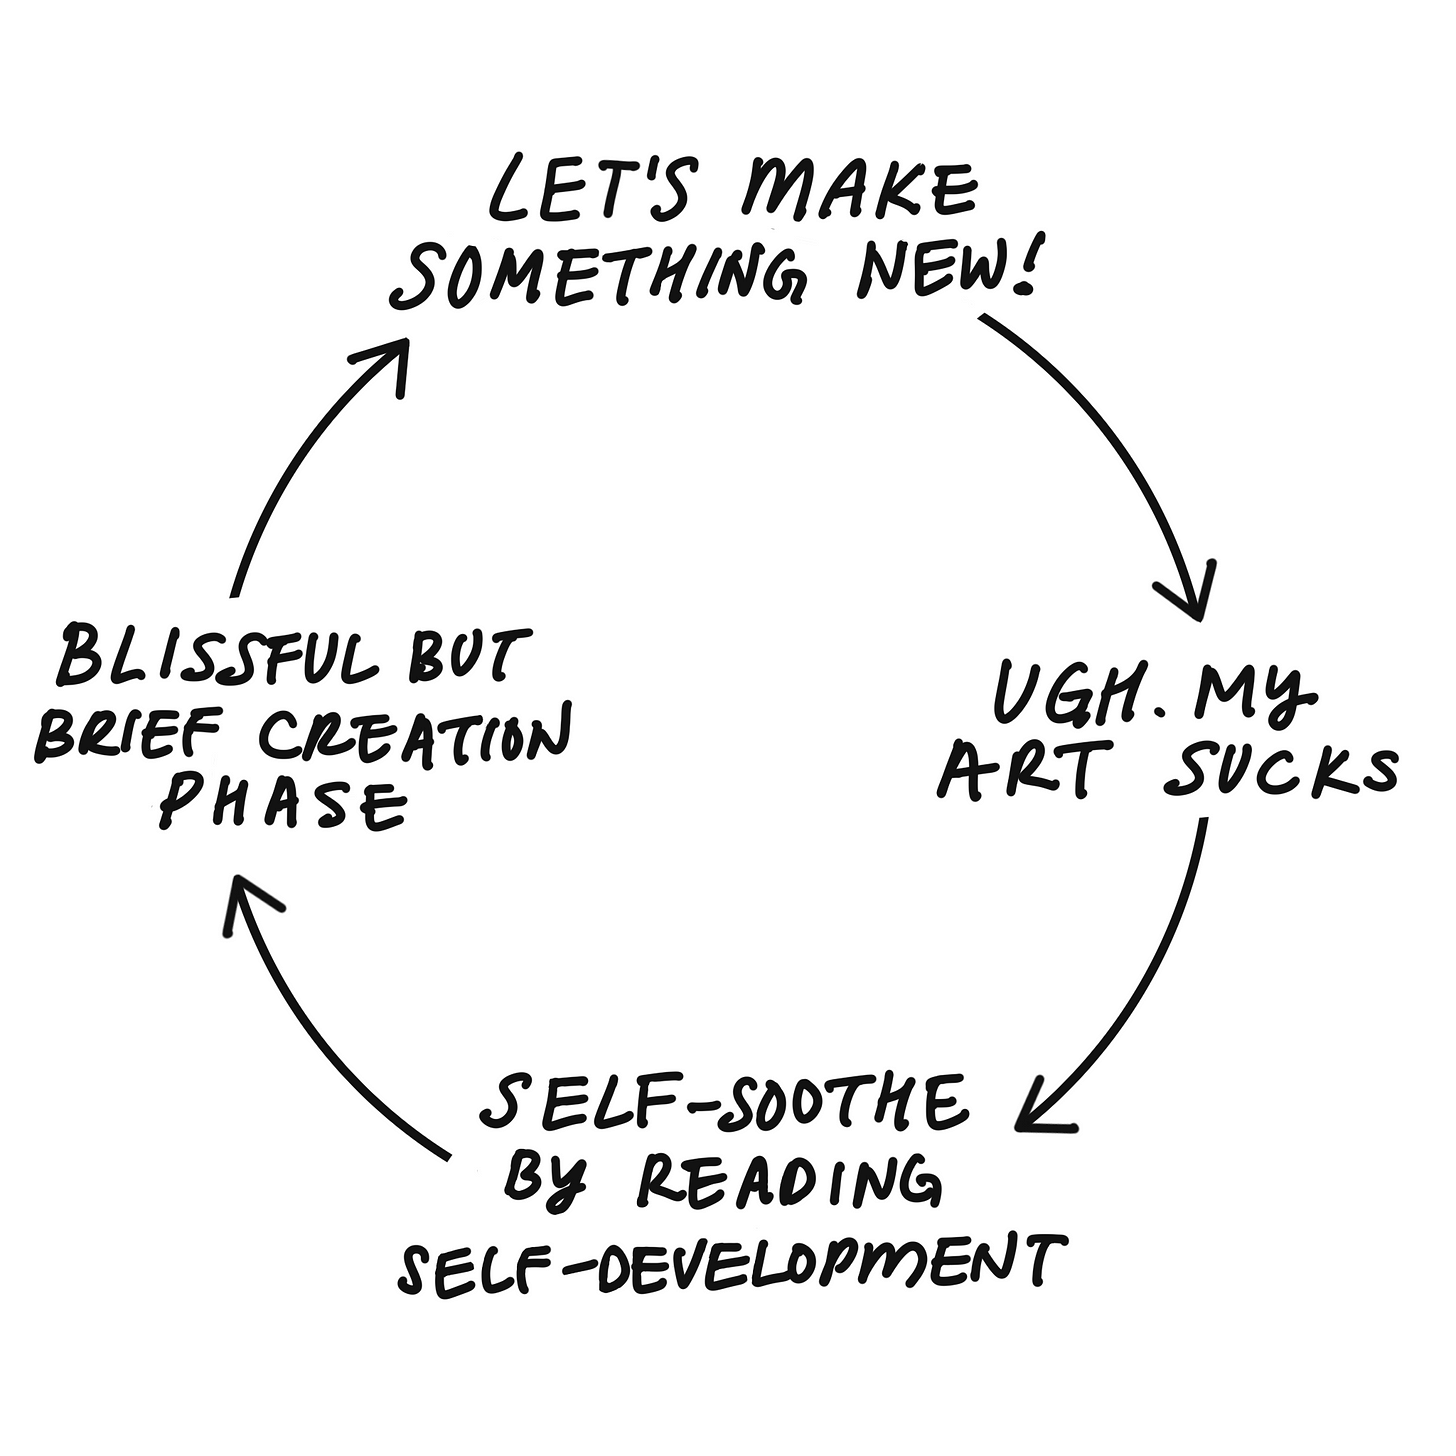 A cycle graphic depicting the creative process: let's make something new -> ugh. my art sucks -> self-soothe by reading self-development -> blissful but brief creation phase